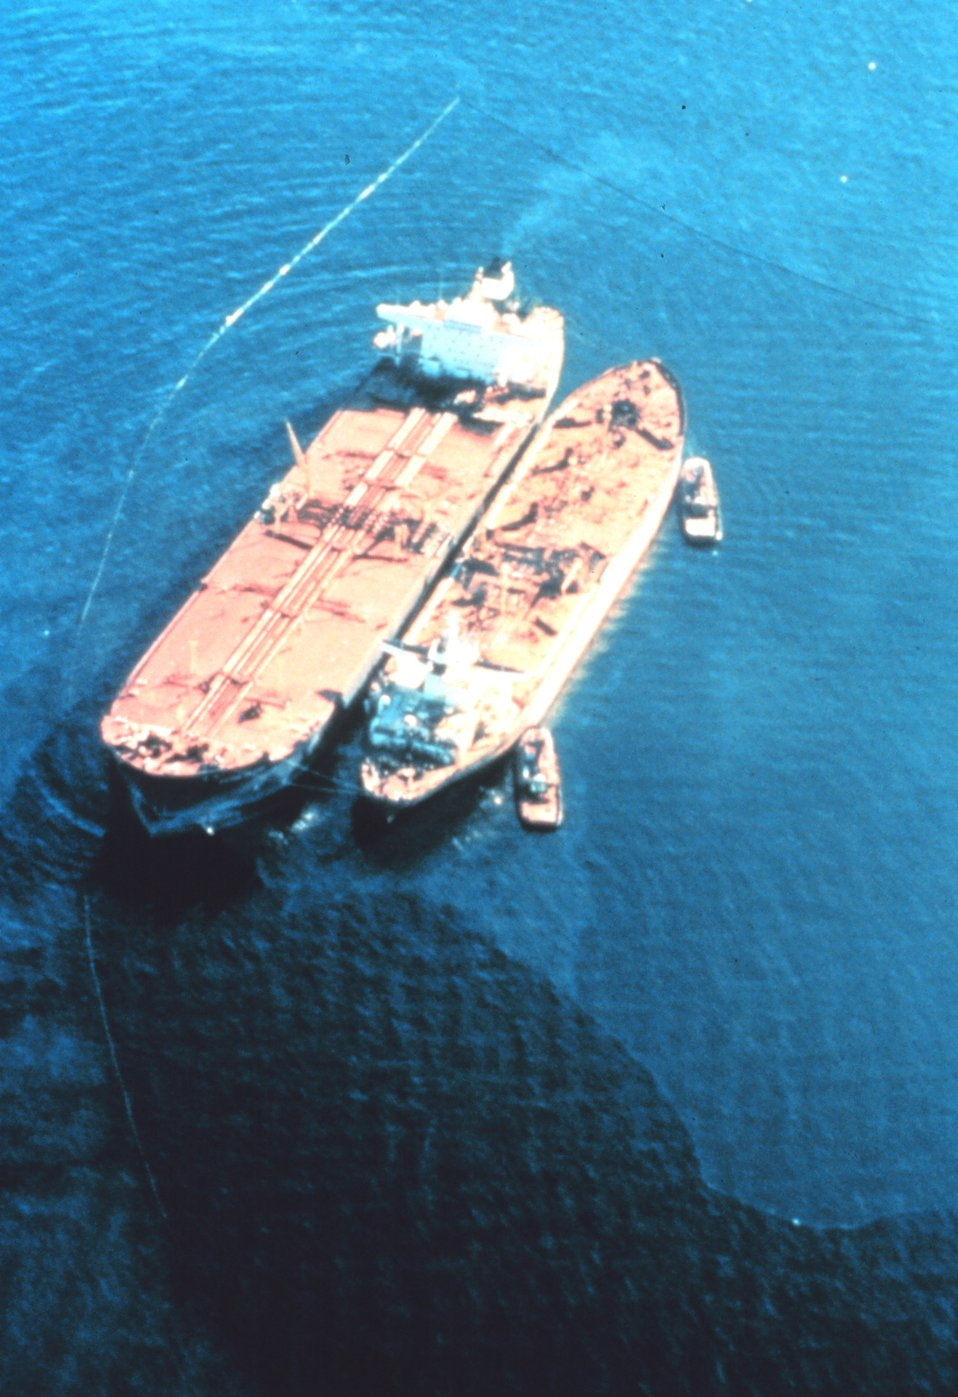 EXXON VALDEZ aground on Bligh Reef being lightered to reduce oil spillage and lighten ship to get off reef.